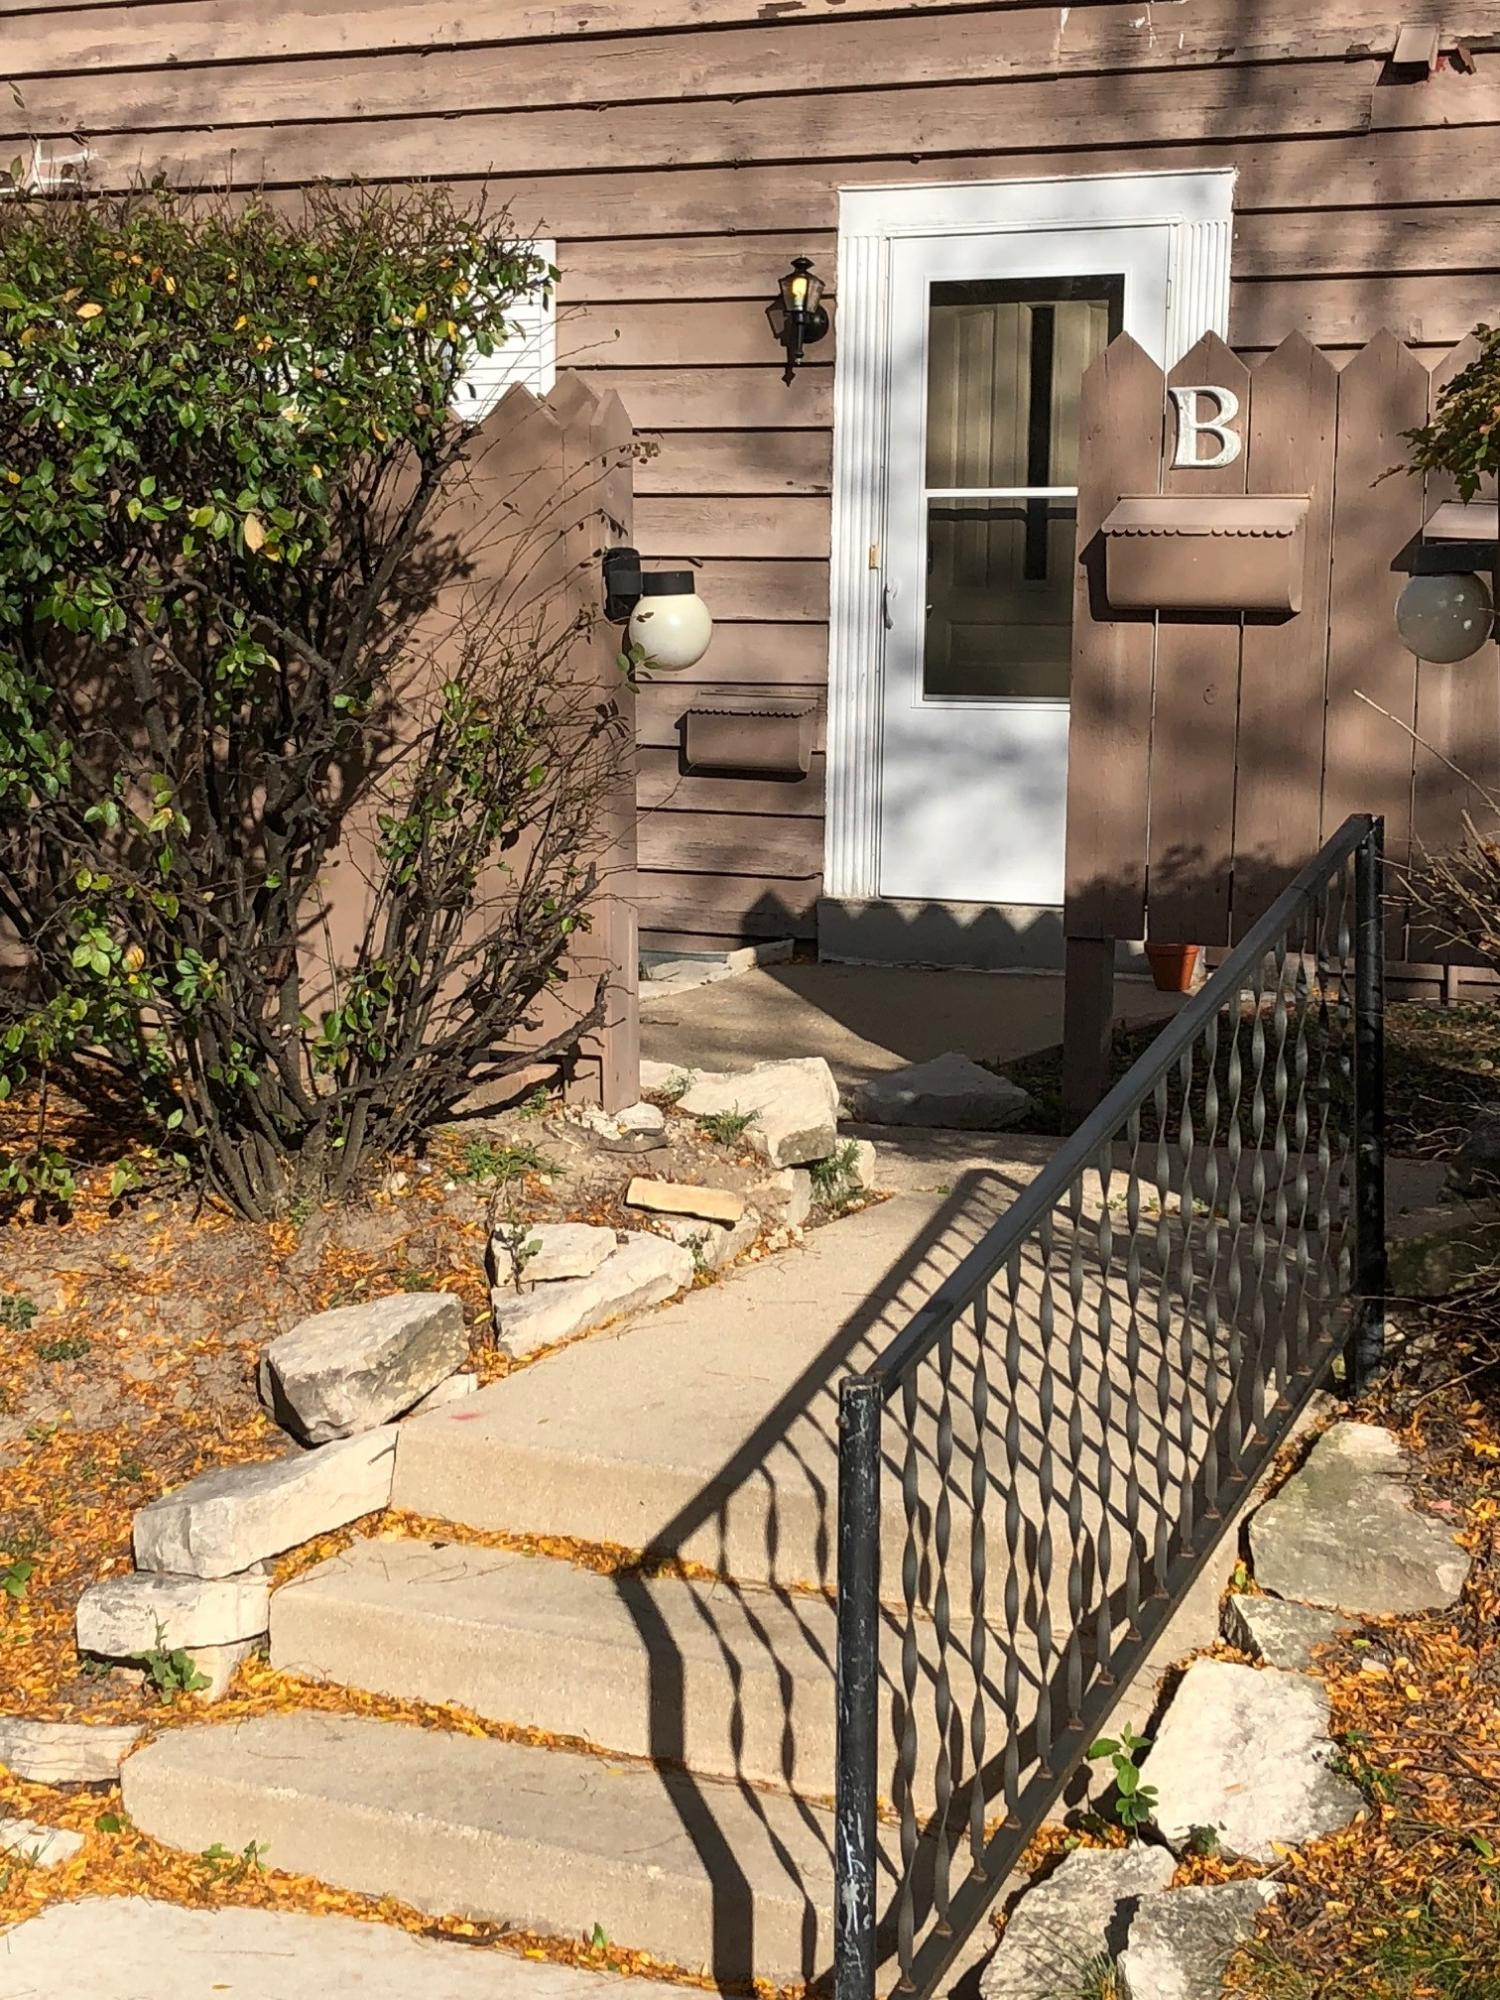 7817 60th St, Milwaukee, Wisconsin 53223, 3 Bedrooms Bedrooms, 6 Rooms Rooms,2 BathroomsBathrooms,Condominiums,For Sale,60th St,1,1610761